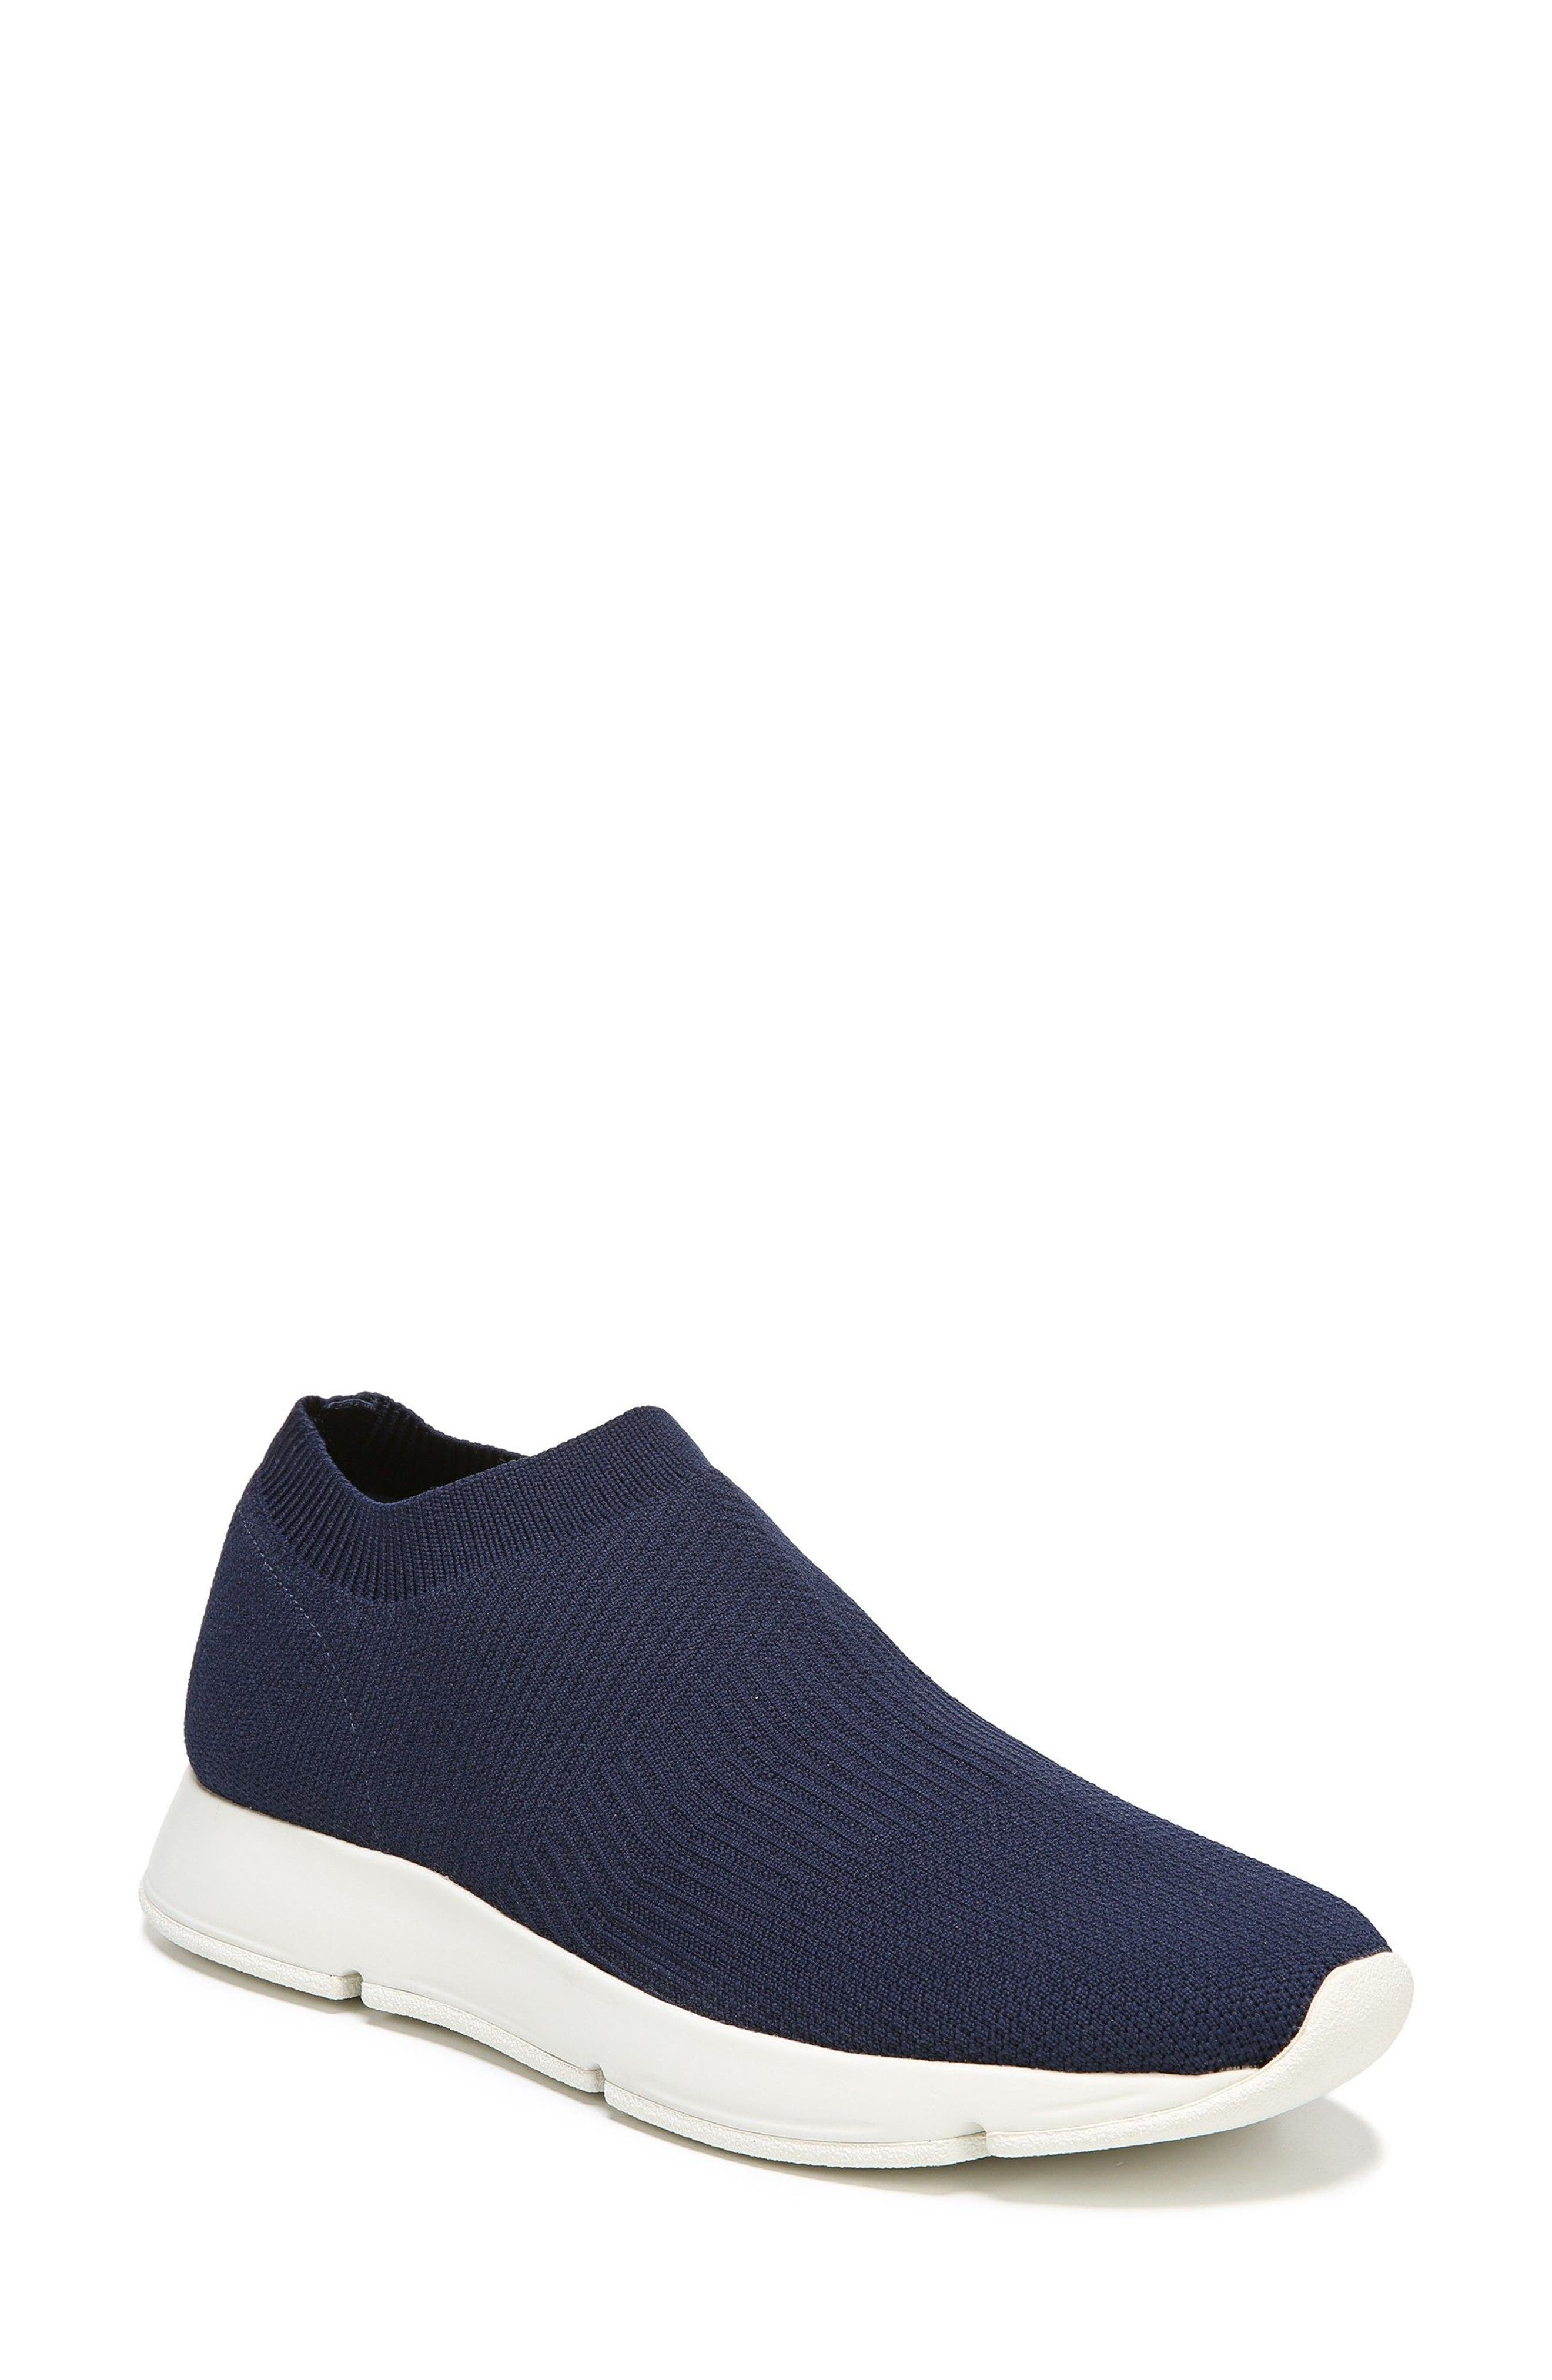 Theroux Slip-On Knit Sneaker,                             Main thumbnail 1, color,                             Navy